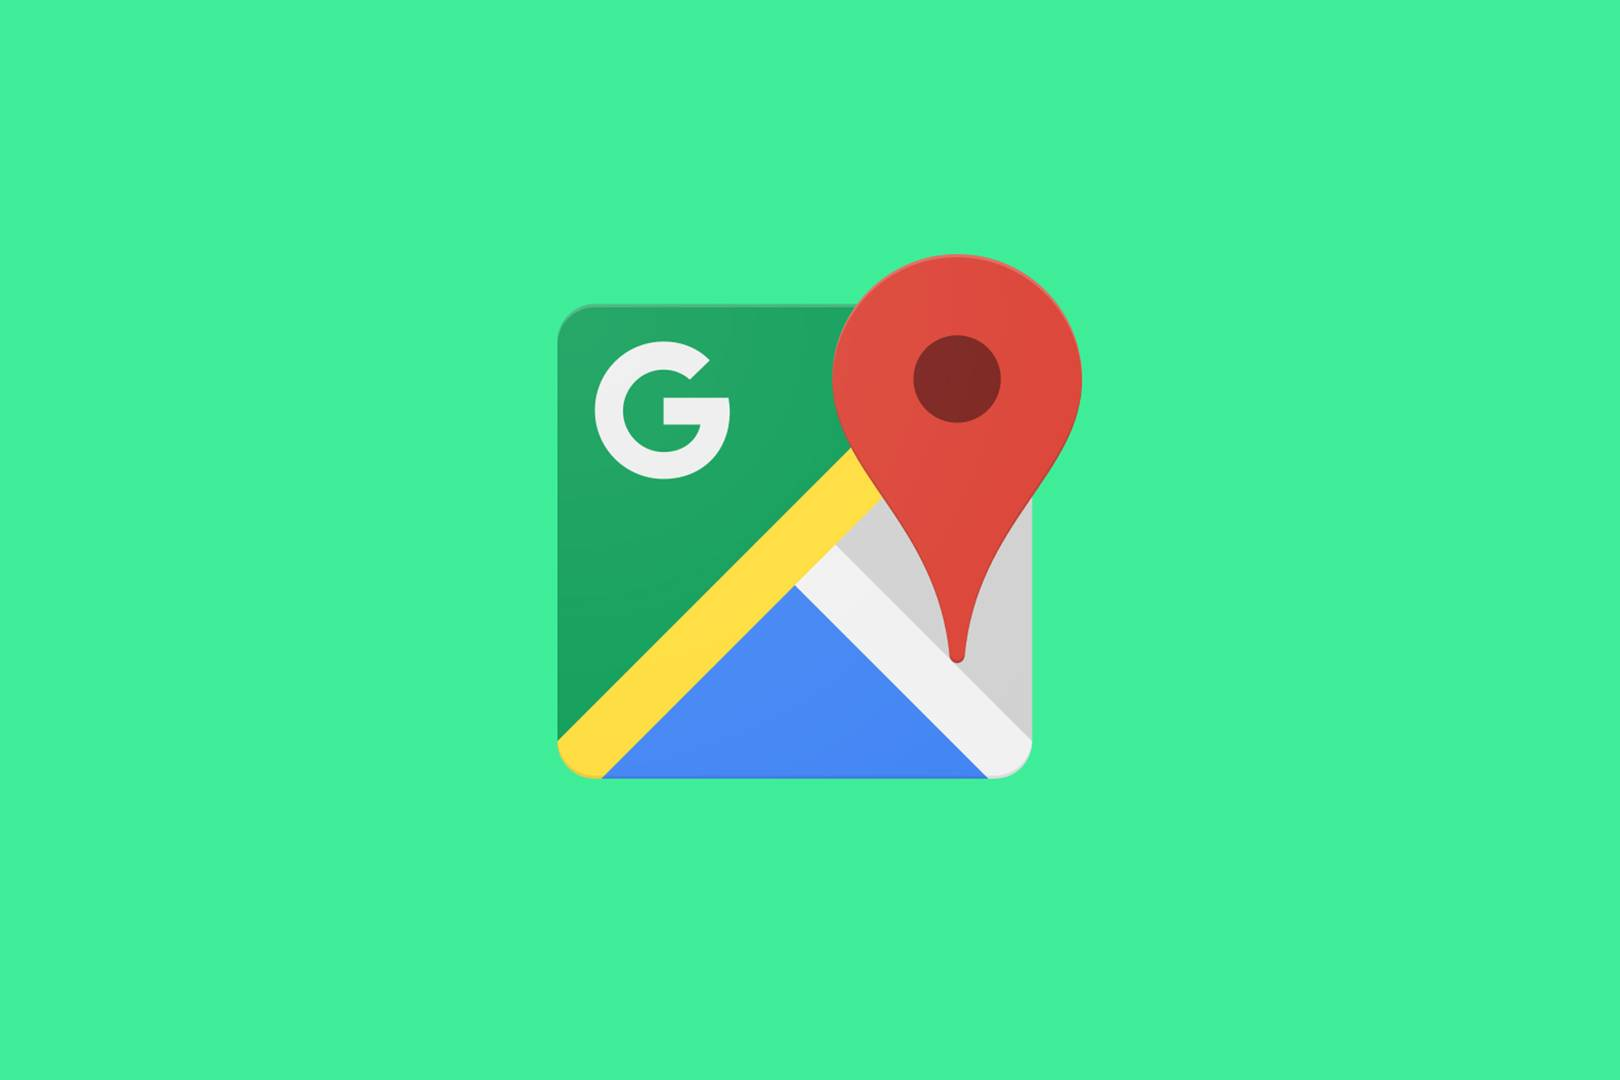 Google Maps' Incognito Mode won't help to protect your ... on google voice, bing maps, google earth, web mapping, google latitude, satellite map images with missing or unclear data, nokia maps, google moon, google sky, yahoo! maps, google search, google map maker, google mars, route planning software, bing maps platform, journey planner,